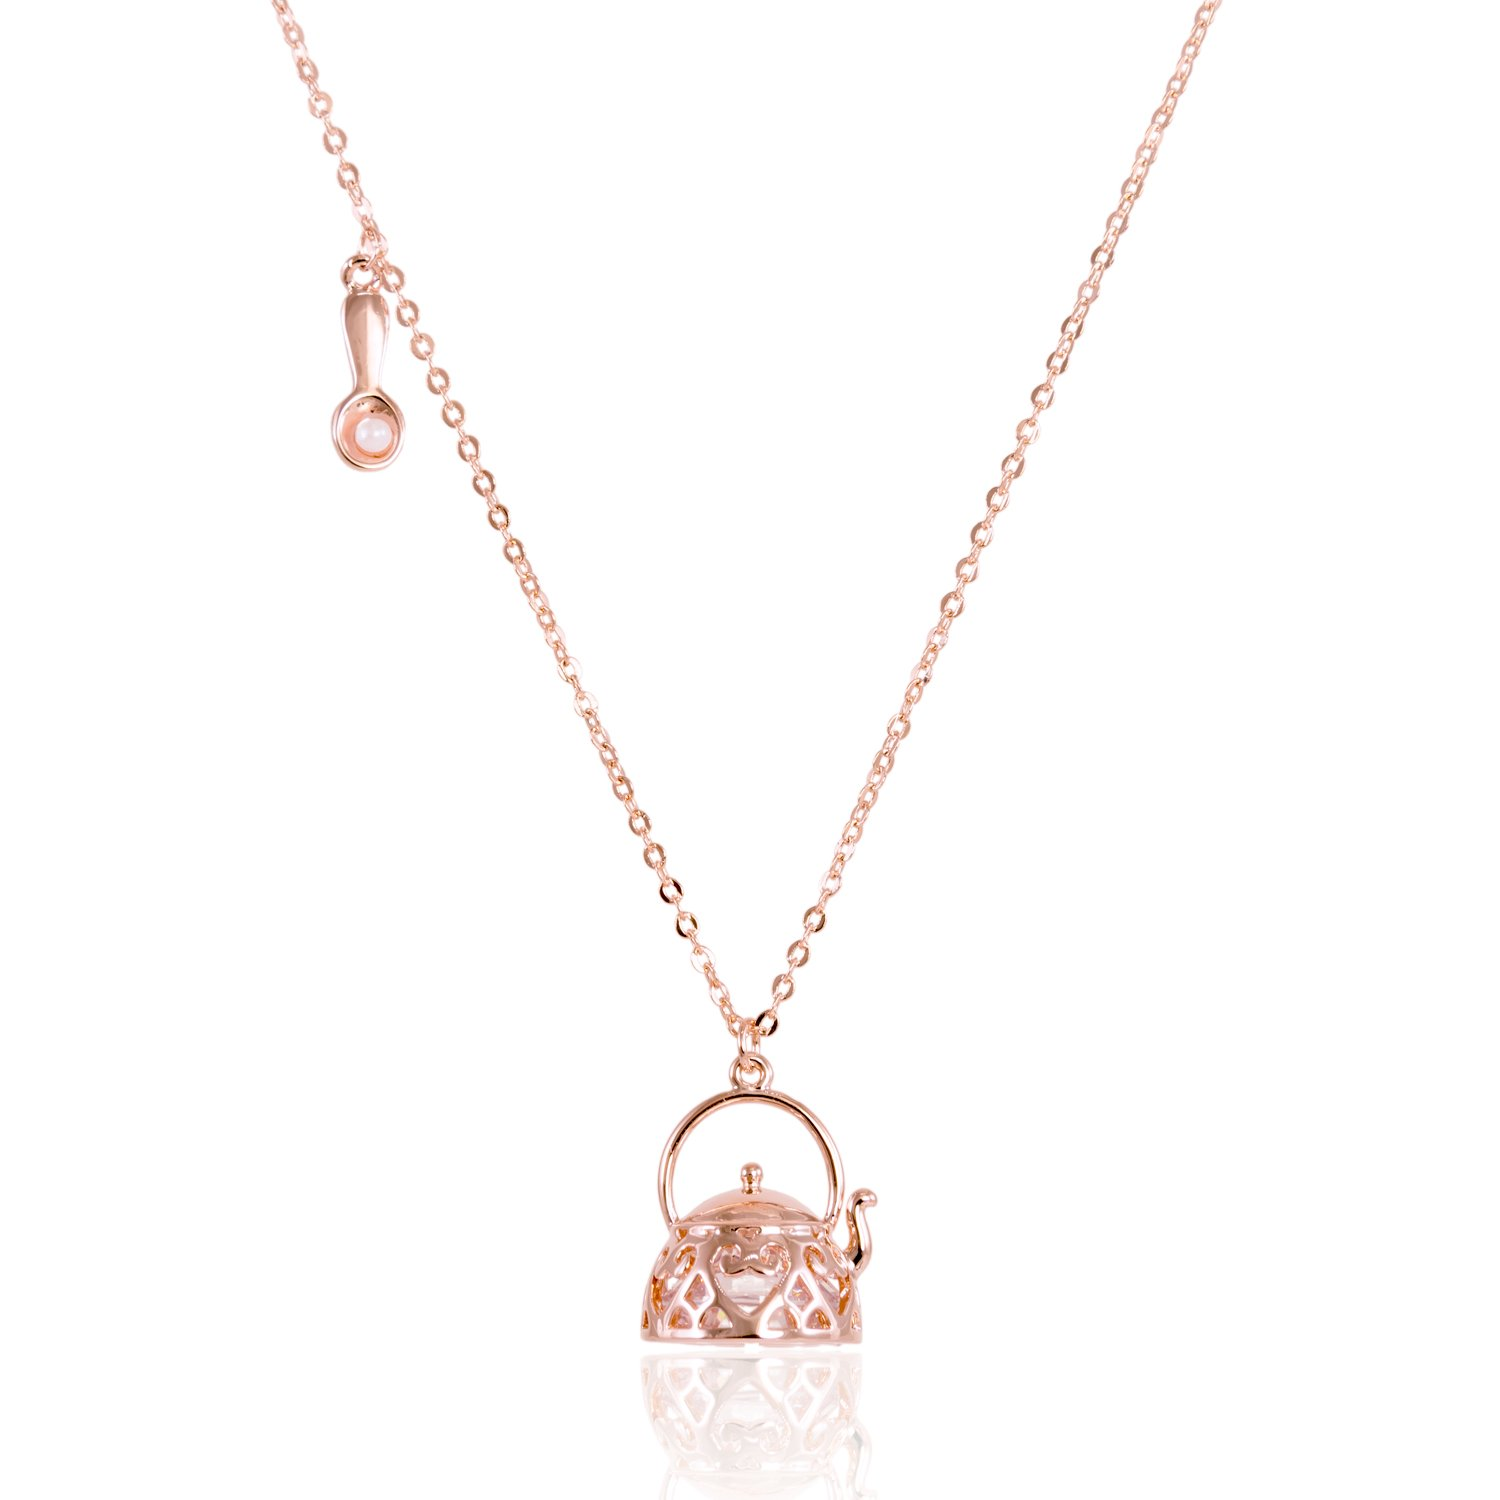 ISAACSONG.DESIGN Gold/Silver Plated Engraved Love Heart Teapot Floating CZ Crystal Charm Tiny Spoon on Side Pendant Necklace for Women and Girls INC. ISNL0300/0301